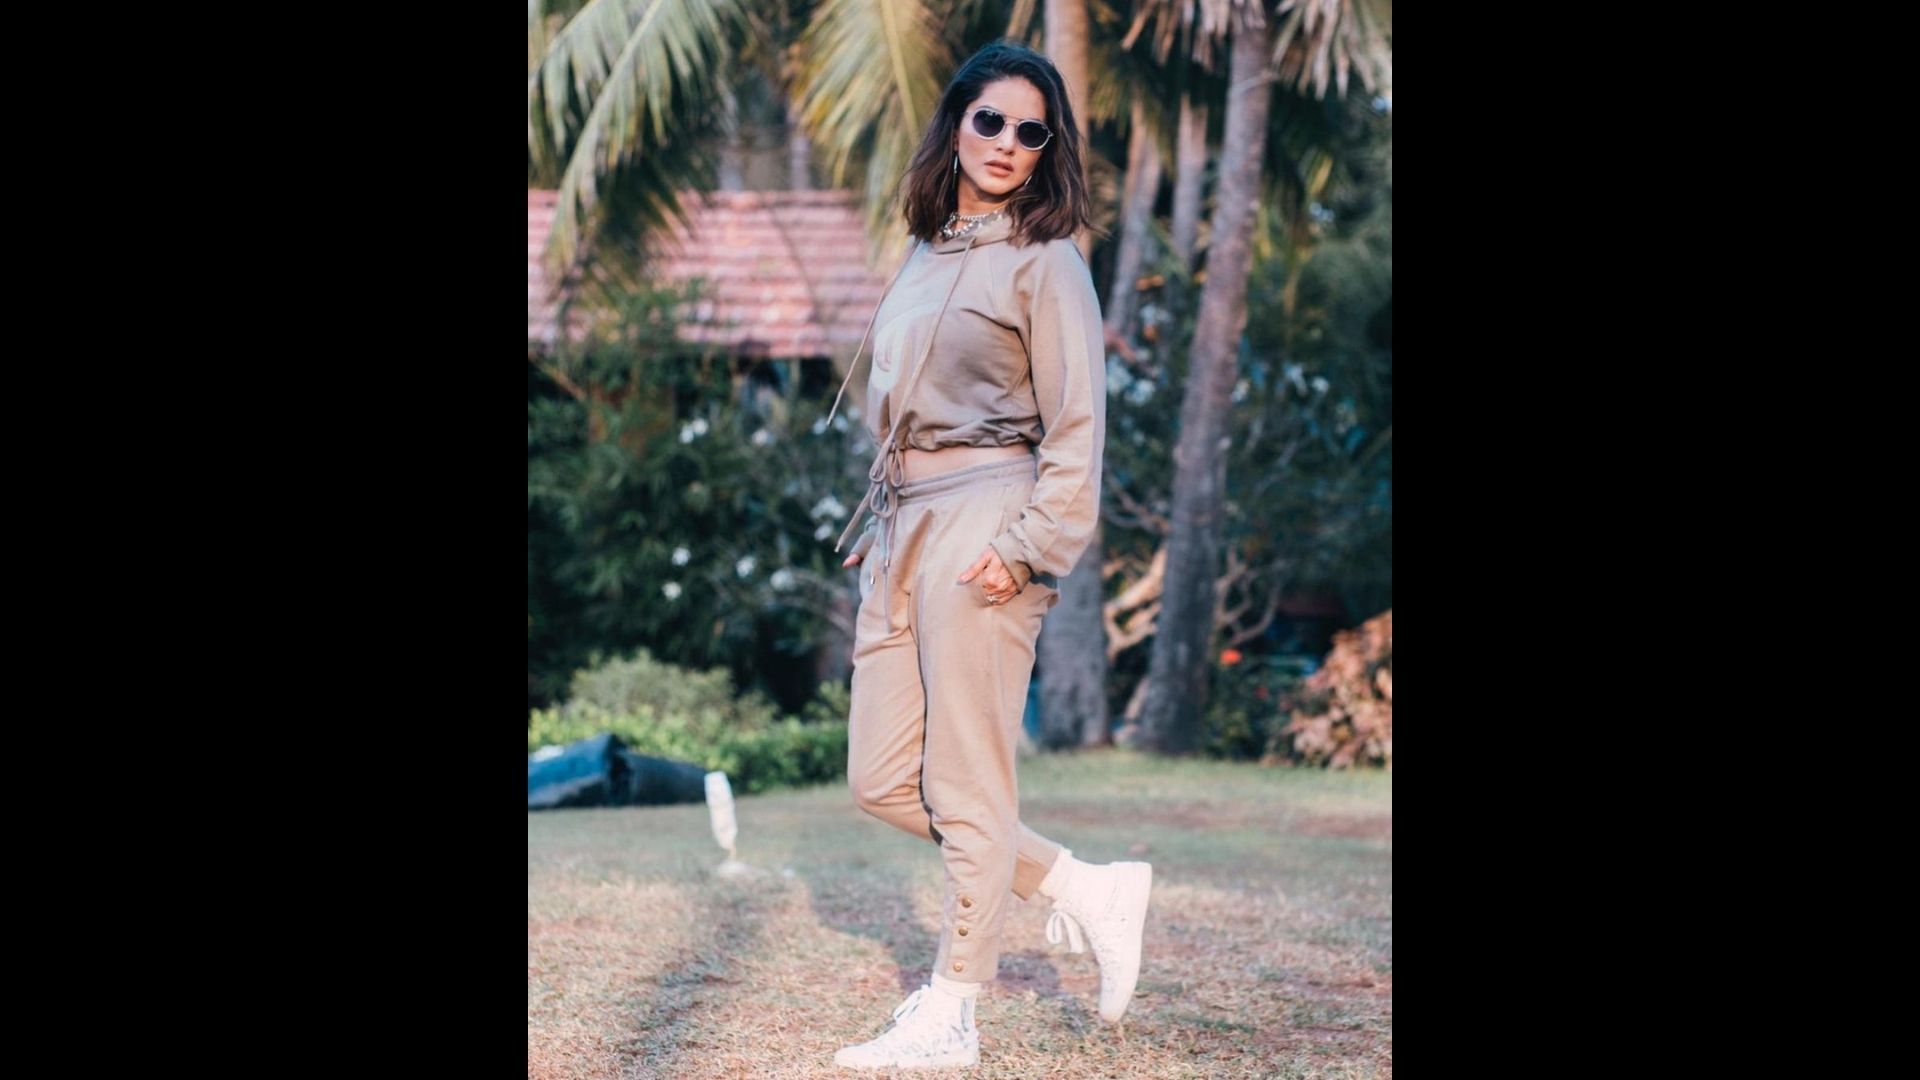 Sunny Leone Looks Cool As A Cucumber In Her Easy Breezy Hoodie And Track Pants; Shows Us A New Style And Prep For Posing